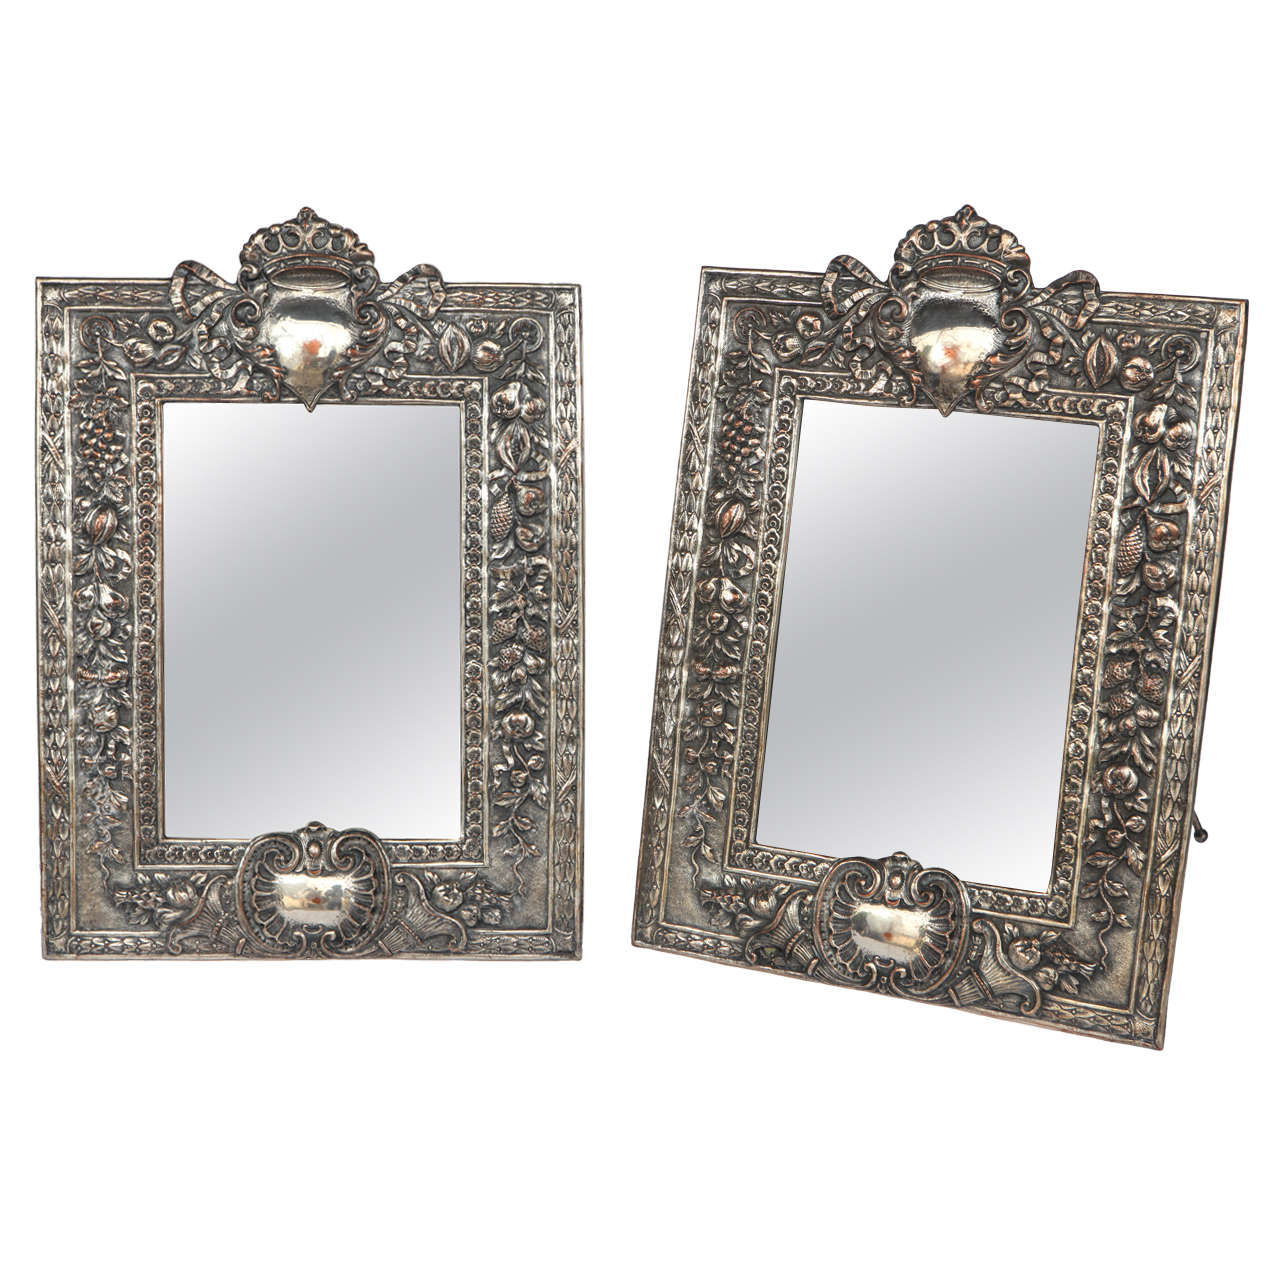 Pair of Late 19th Century English Silver Mirrors